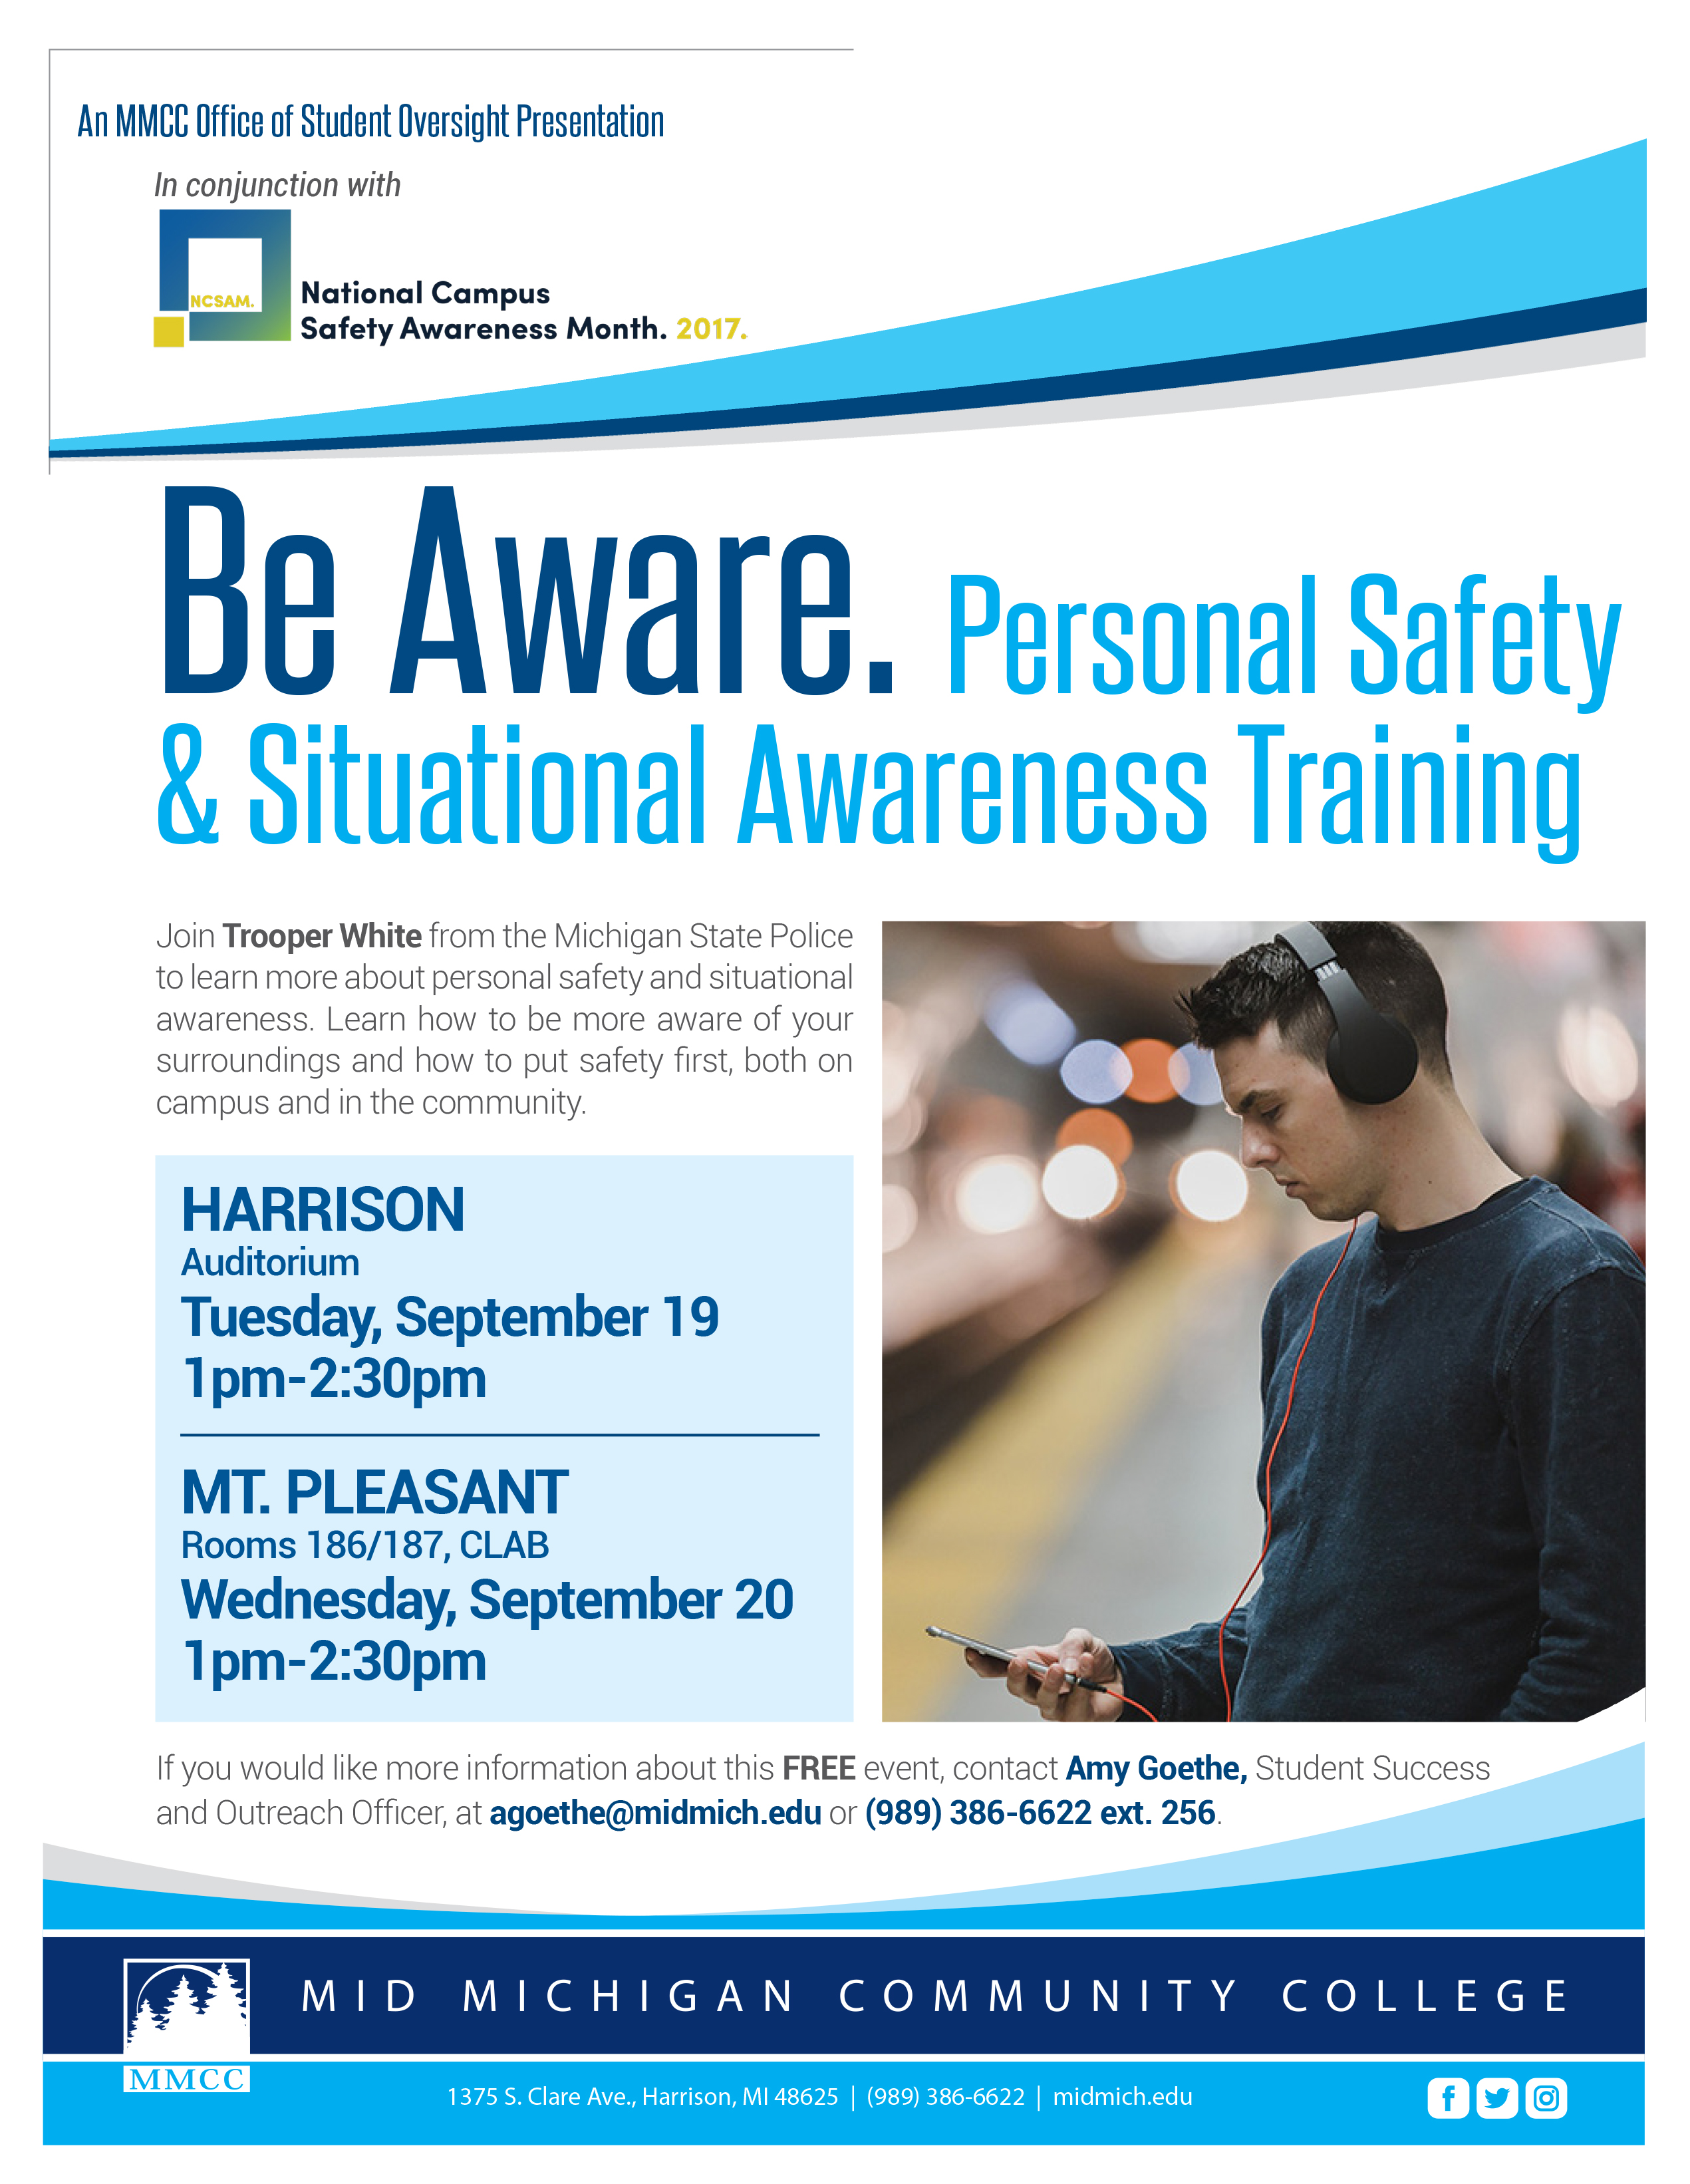 PersonalSafety_Awareness_FLYER_8-30-17.jpg